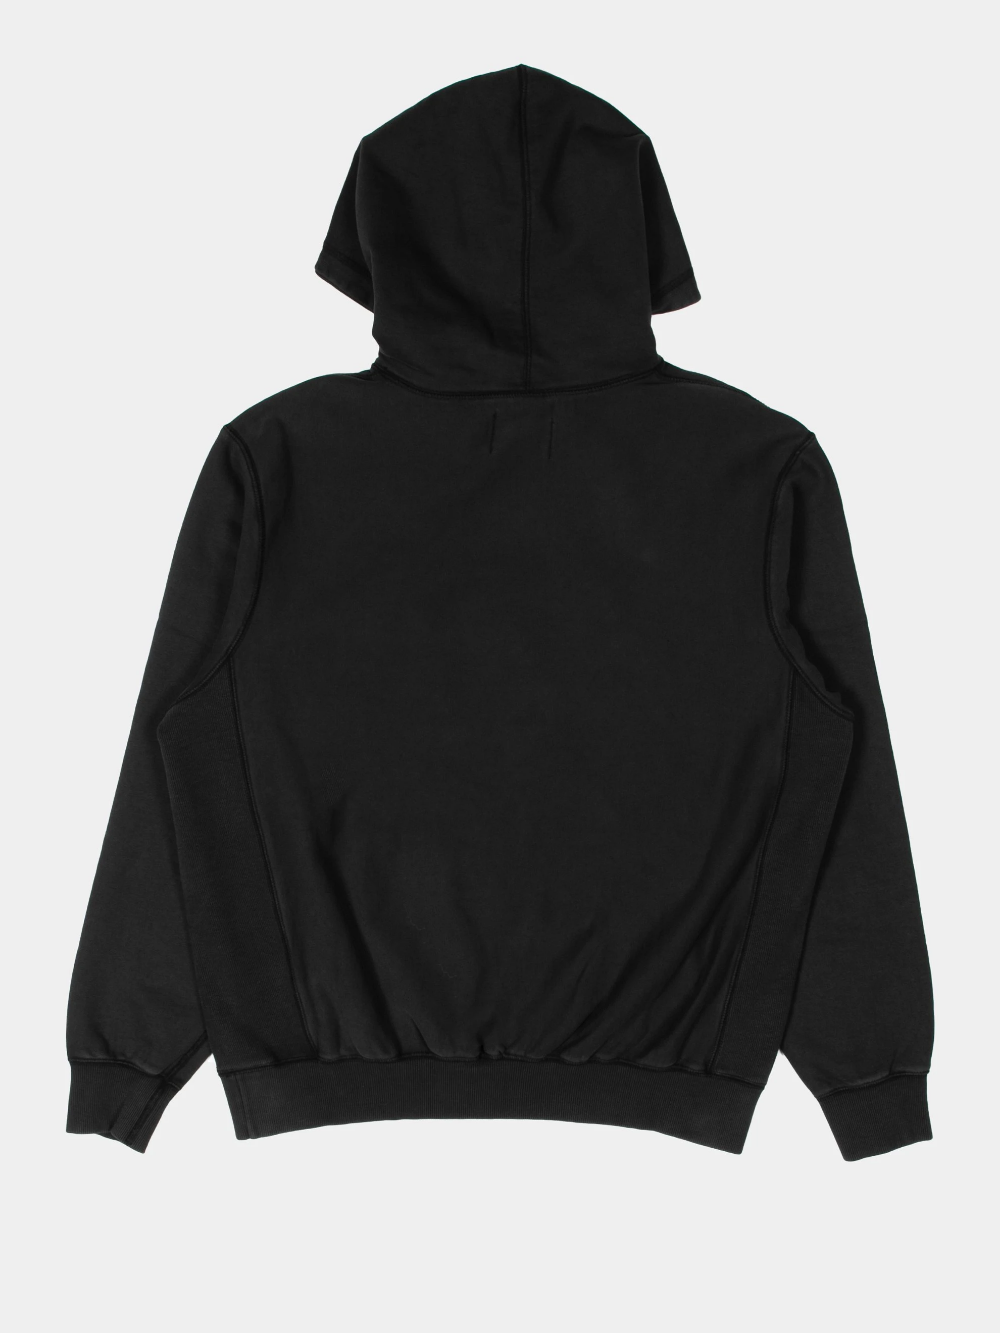 Download Buy Awake Ny Classic Logo Embroidered Hoodie Online At Union Los Angeles Kaos